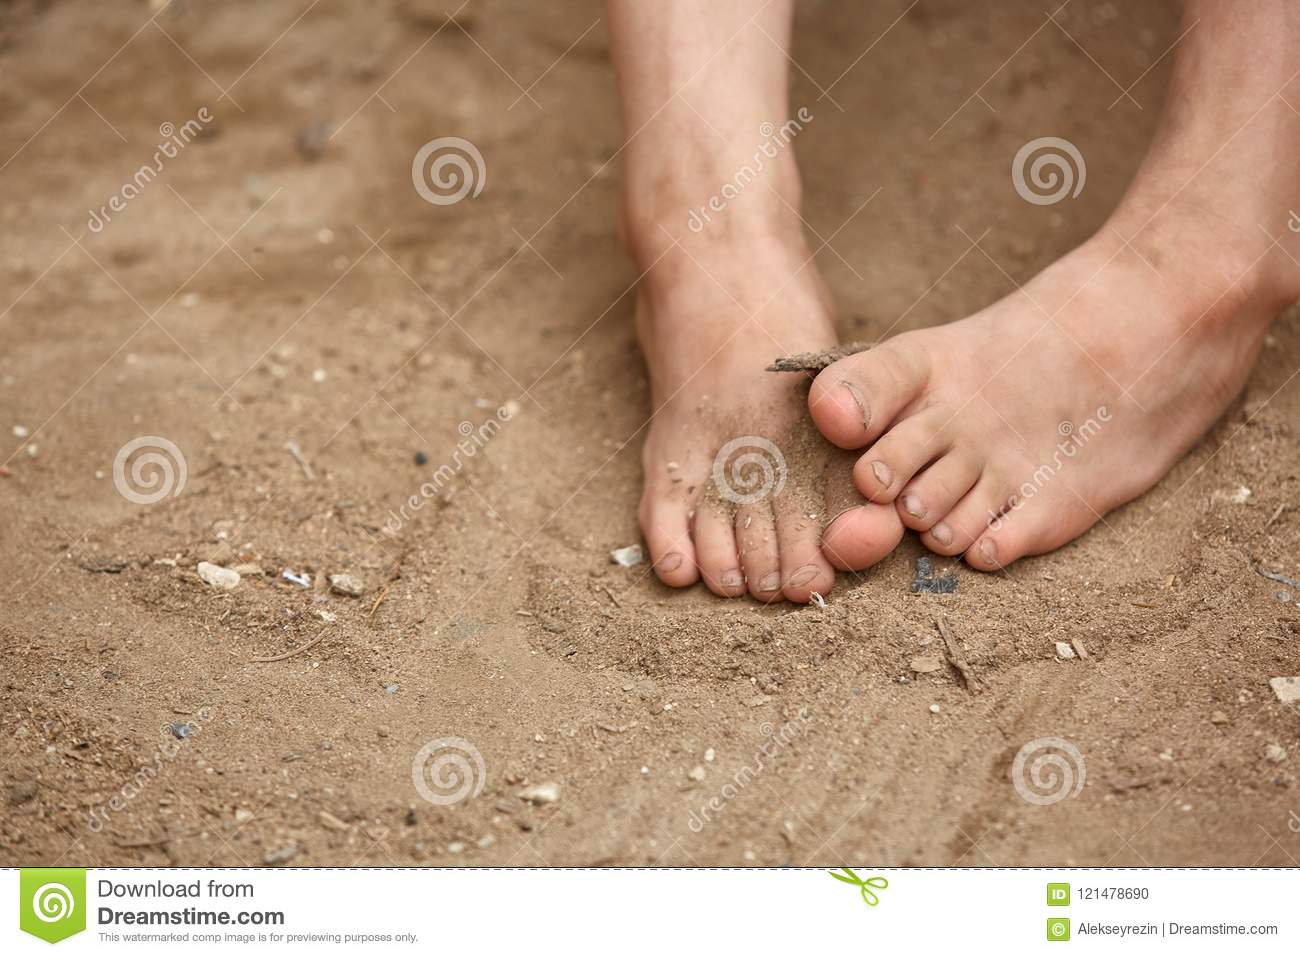 Ugly Feet Stock Photos, Pictures & Royalty-Free Images